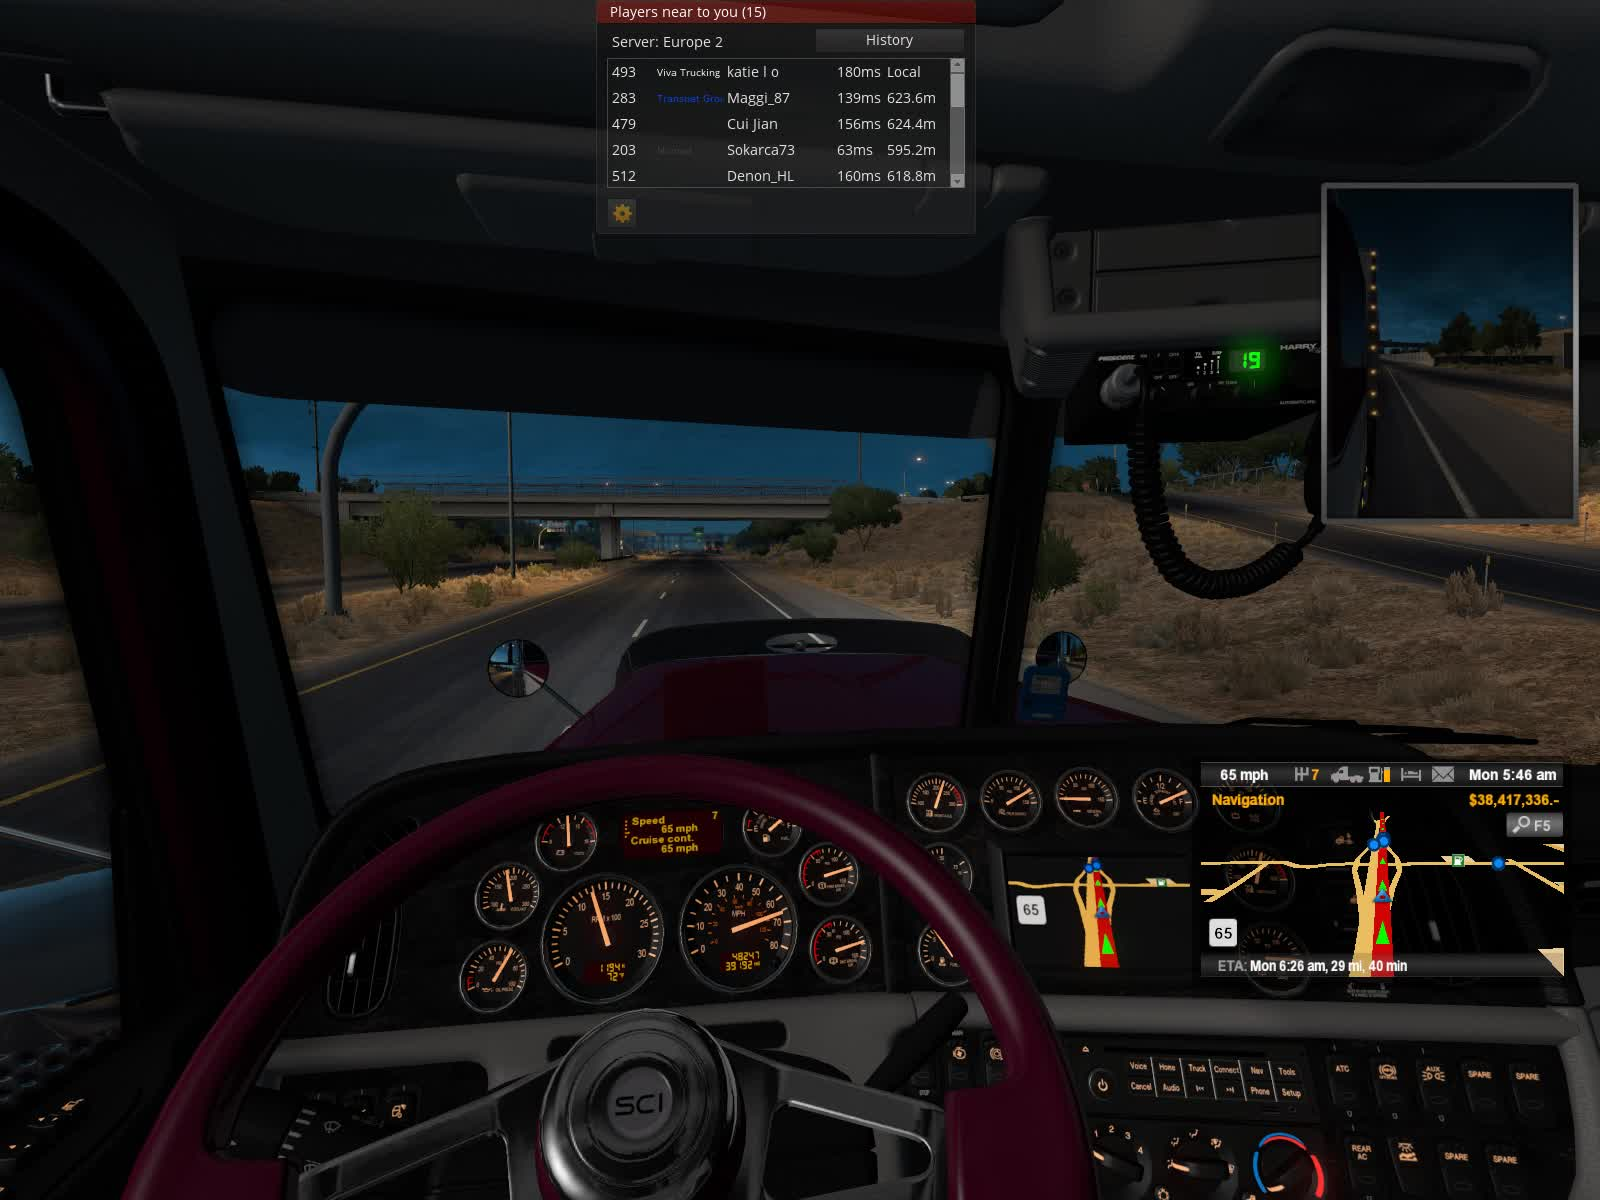 American Truck Simulator Gifs Search   Search & Share on Homdor